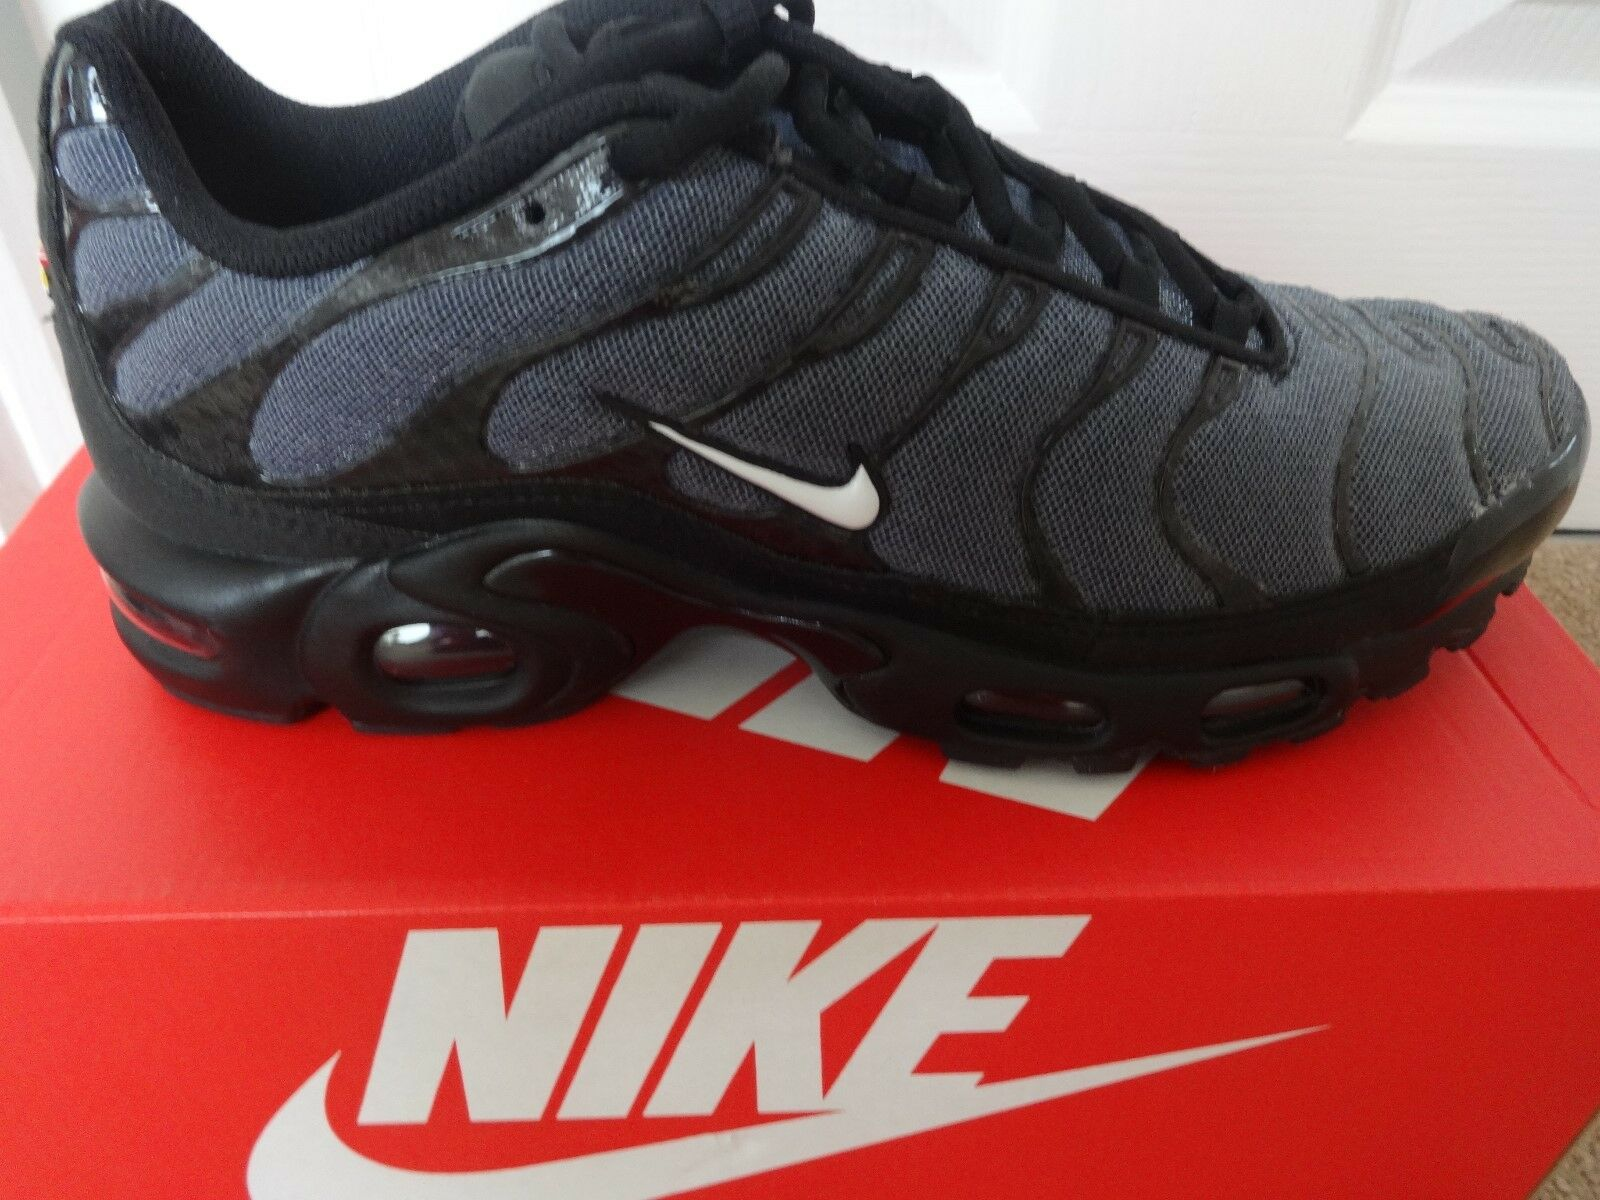 Nike Air max plus TXT trainers sneakers 647315 019 eu 42 us 8.5 NEW+BOX